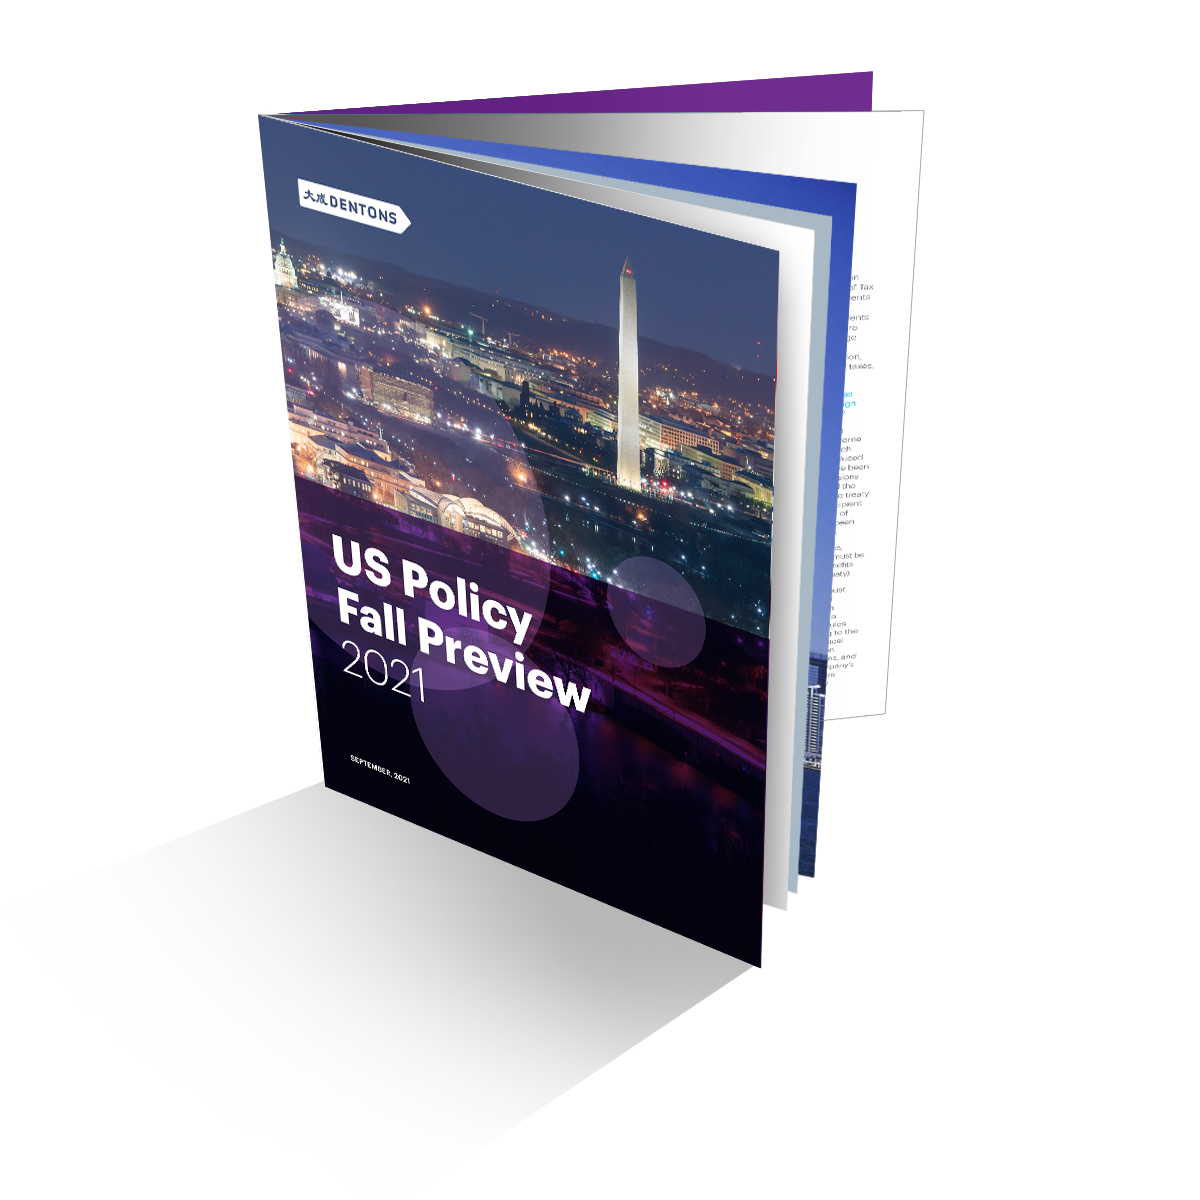 Download US Policy Fall Preview 2021